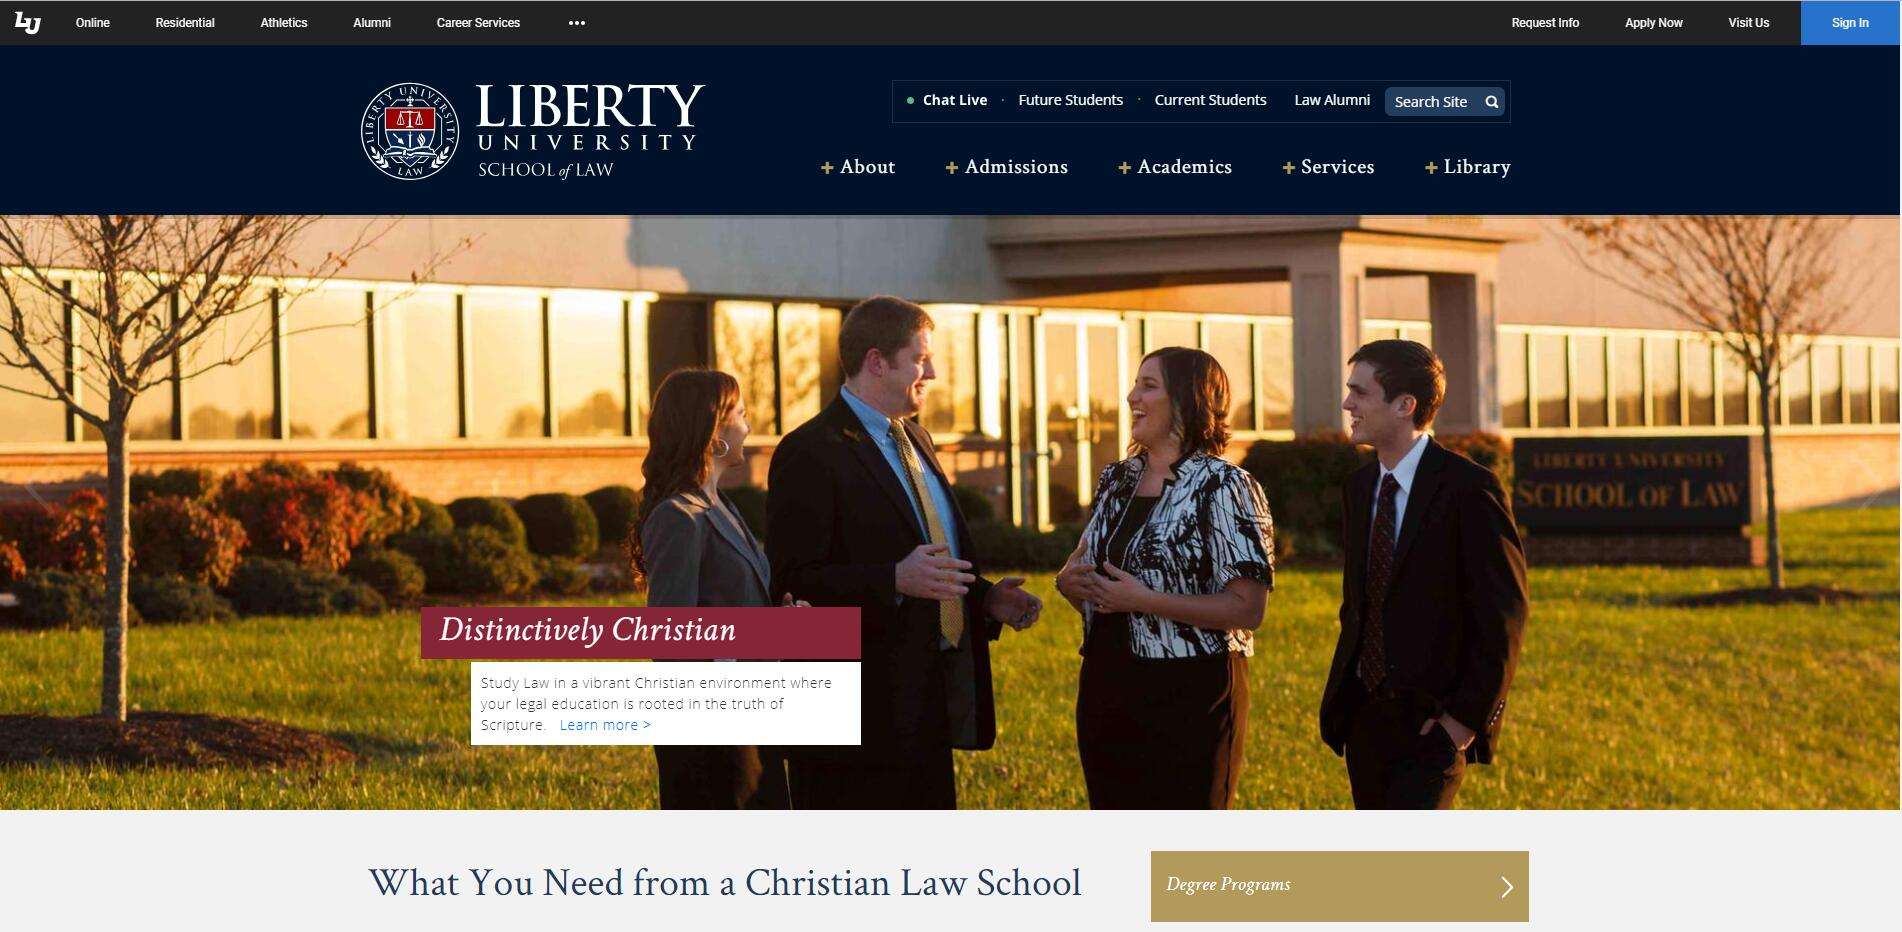 The School of Law at Liberty University